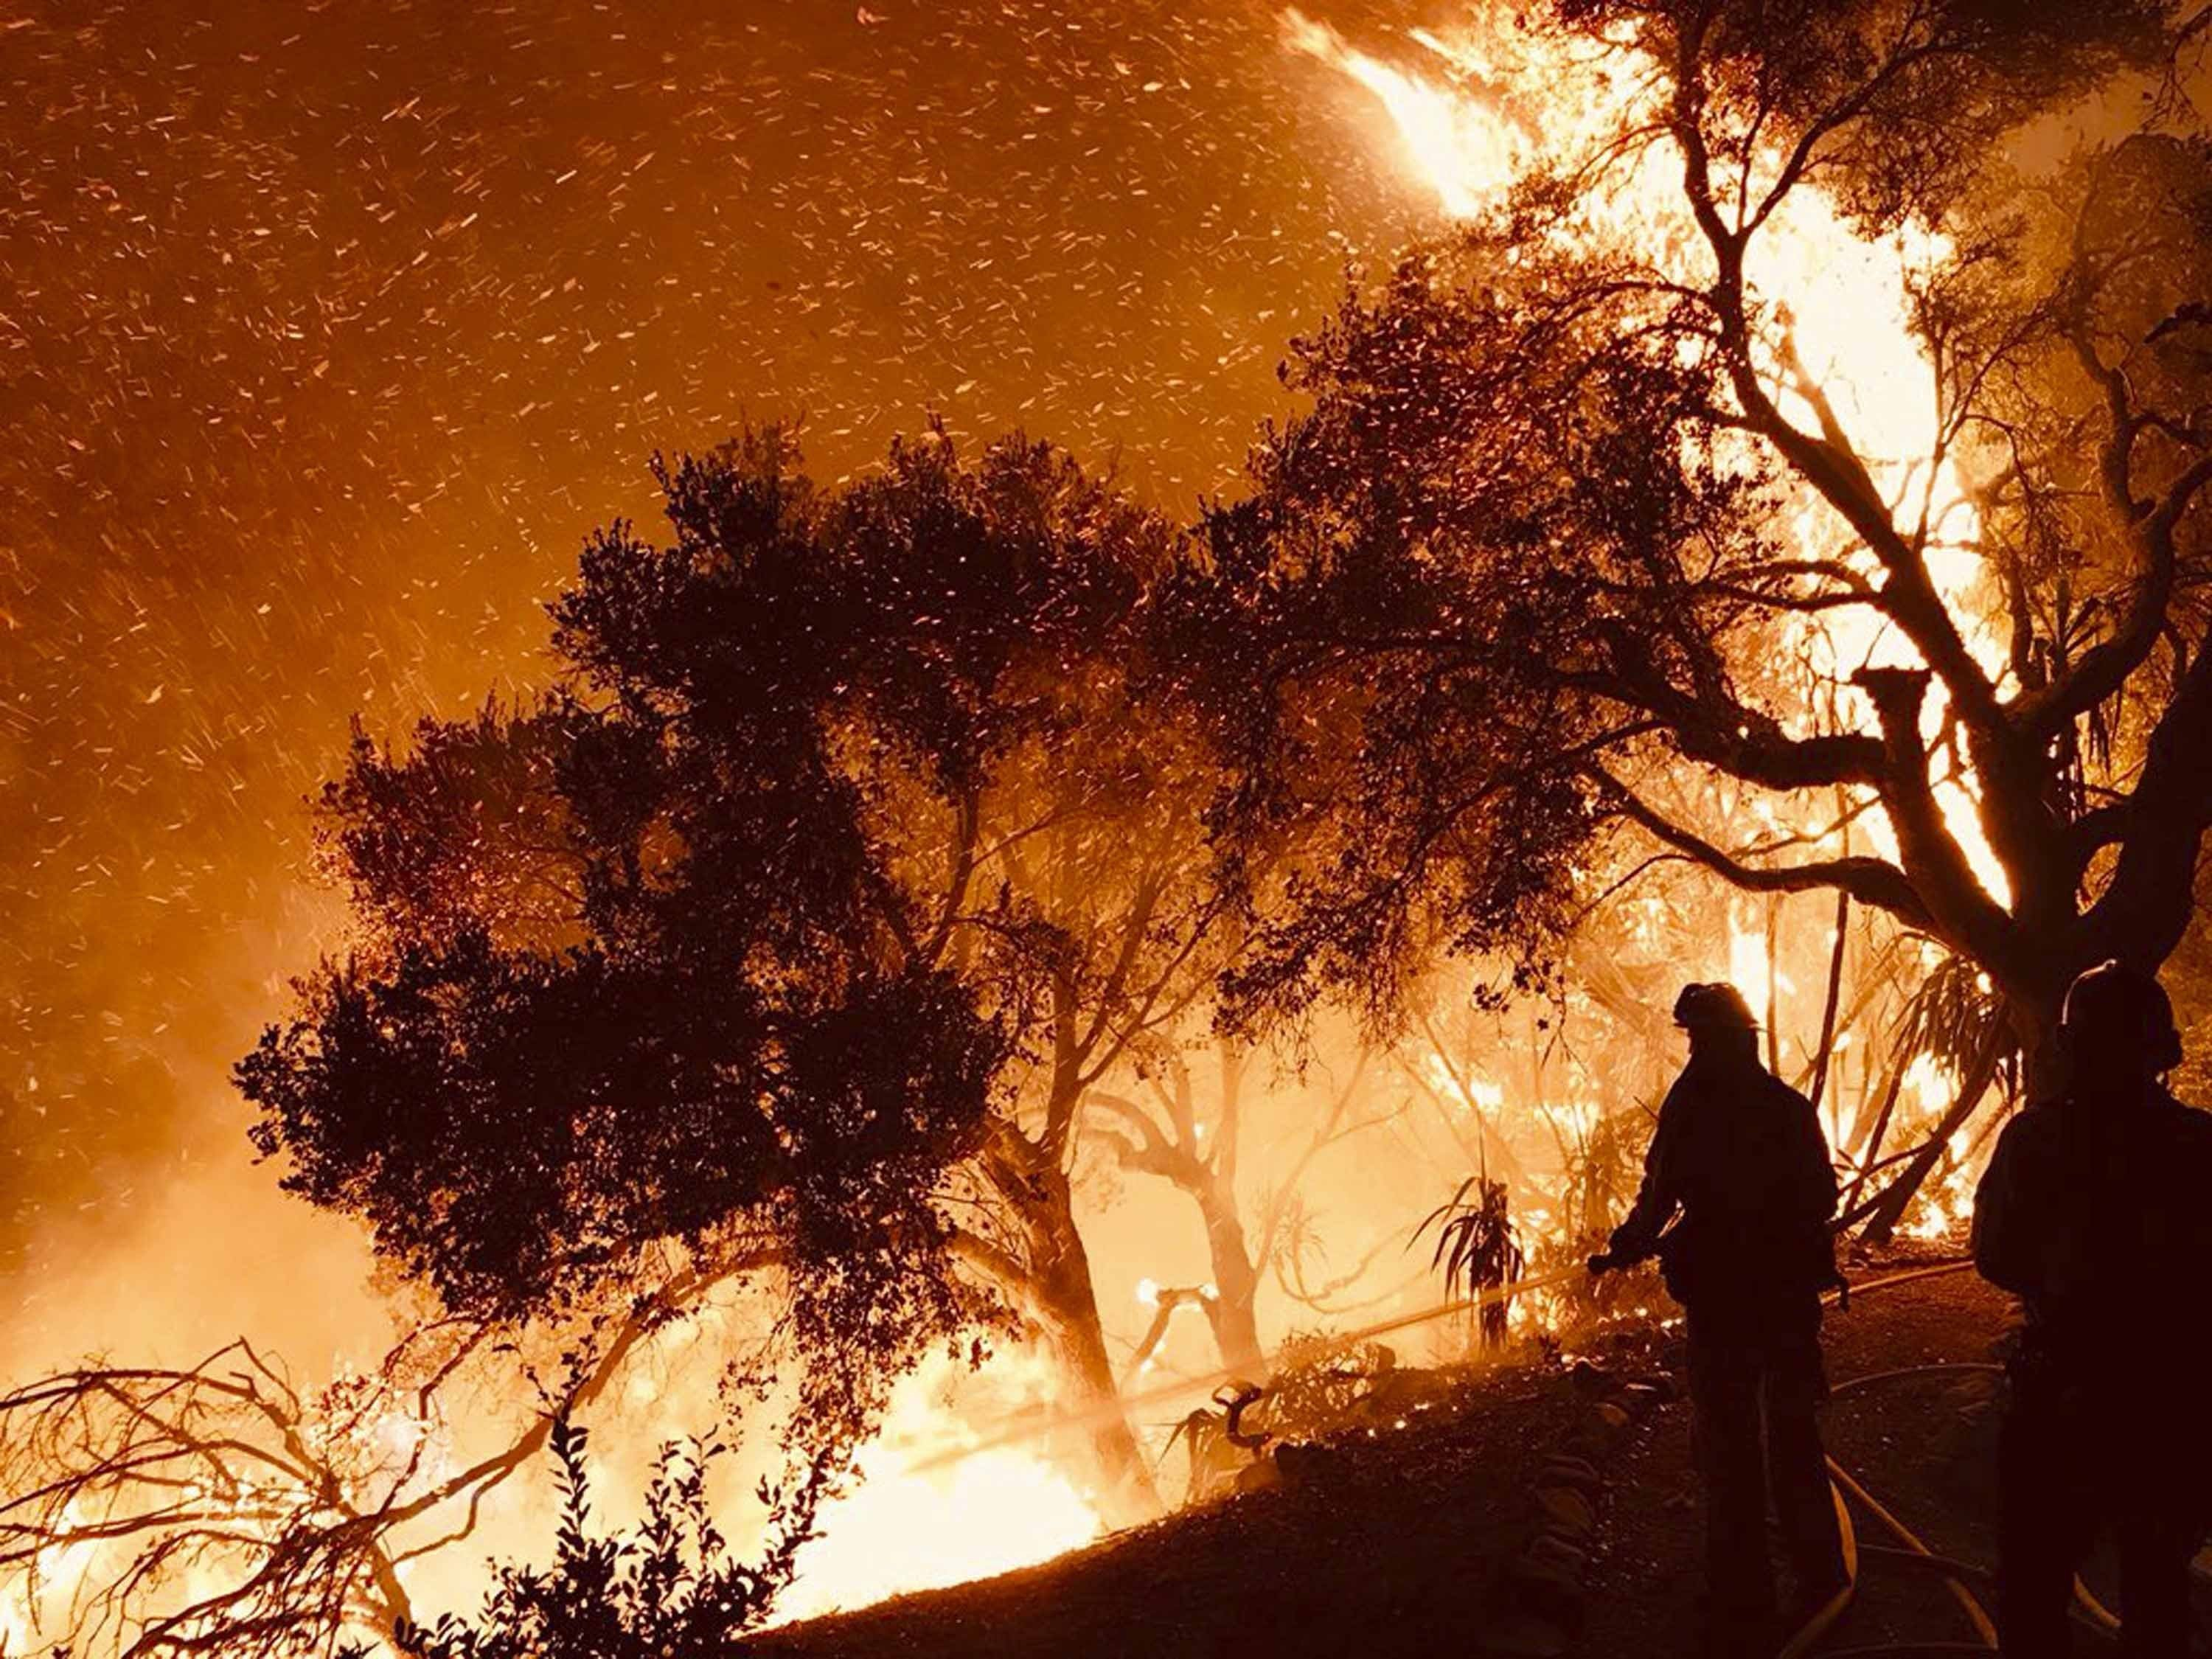 **This image is for use with this specific article only**  In this photo released by the Santa Barbara County Fire Department on Sunday, December 10, firefighters battle a wildfire as it advances on homes in Carpinteria, California. Powerful Santa Ana...